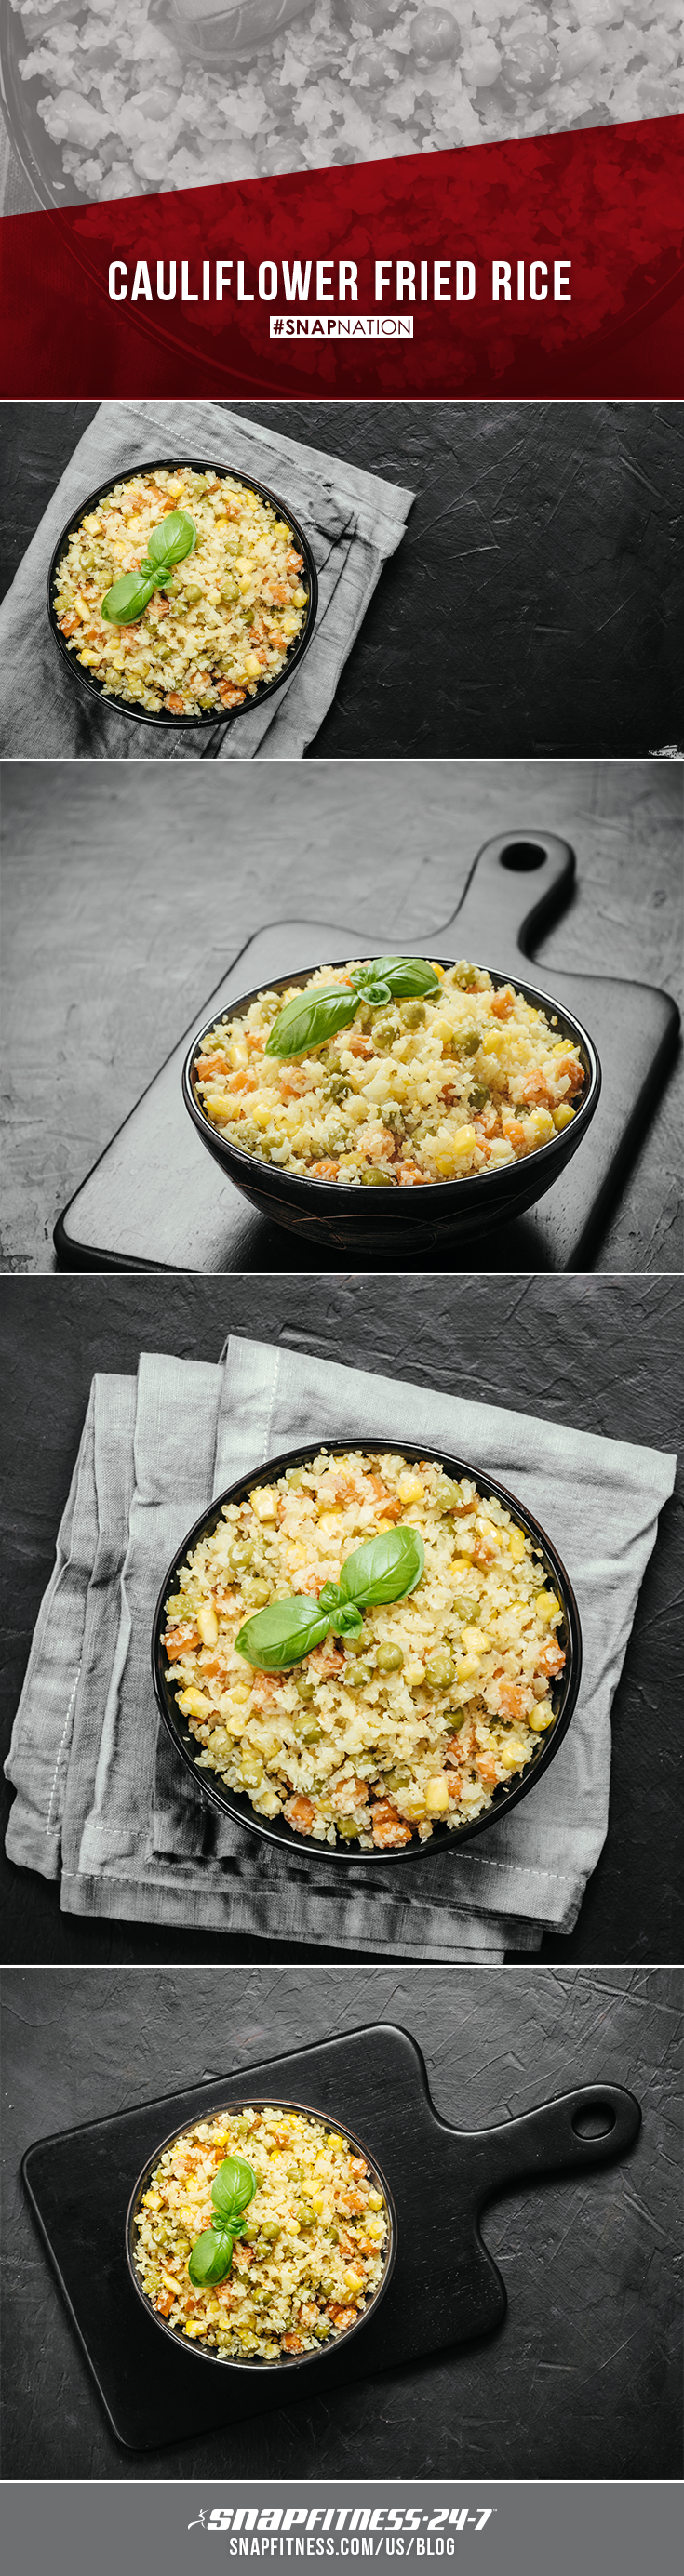 Cauliflower is a great low carb and gluten free substitute for many of your favorite meals. This fiber filled veggie can be turned into pizza crust, mac & cheese, or fried rice! Visit our blog to learn how to make this delicious, veggie-filled, cauliflower fried rice.